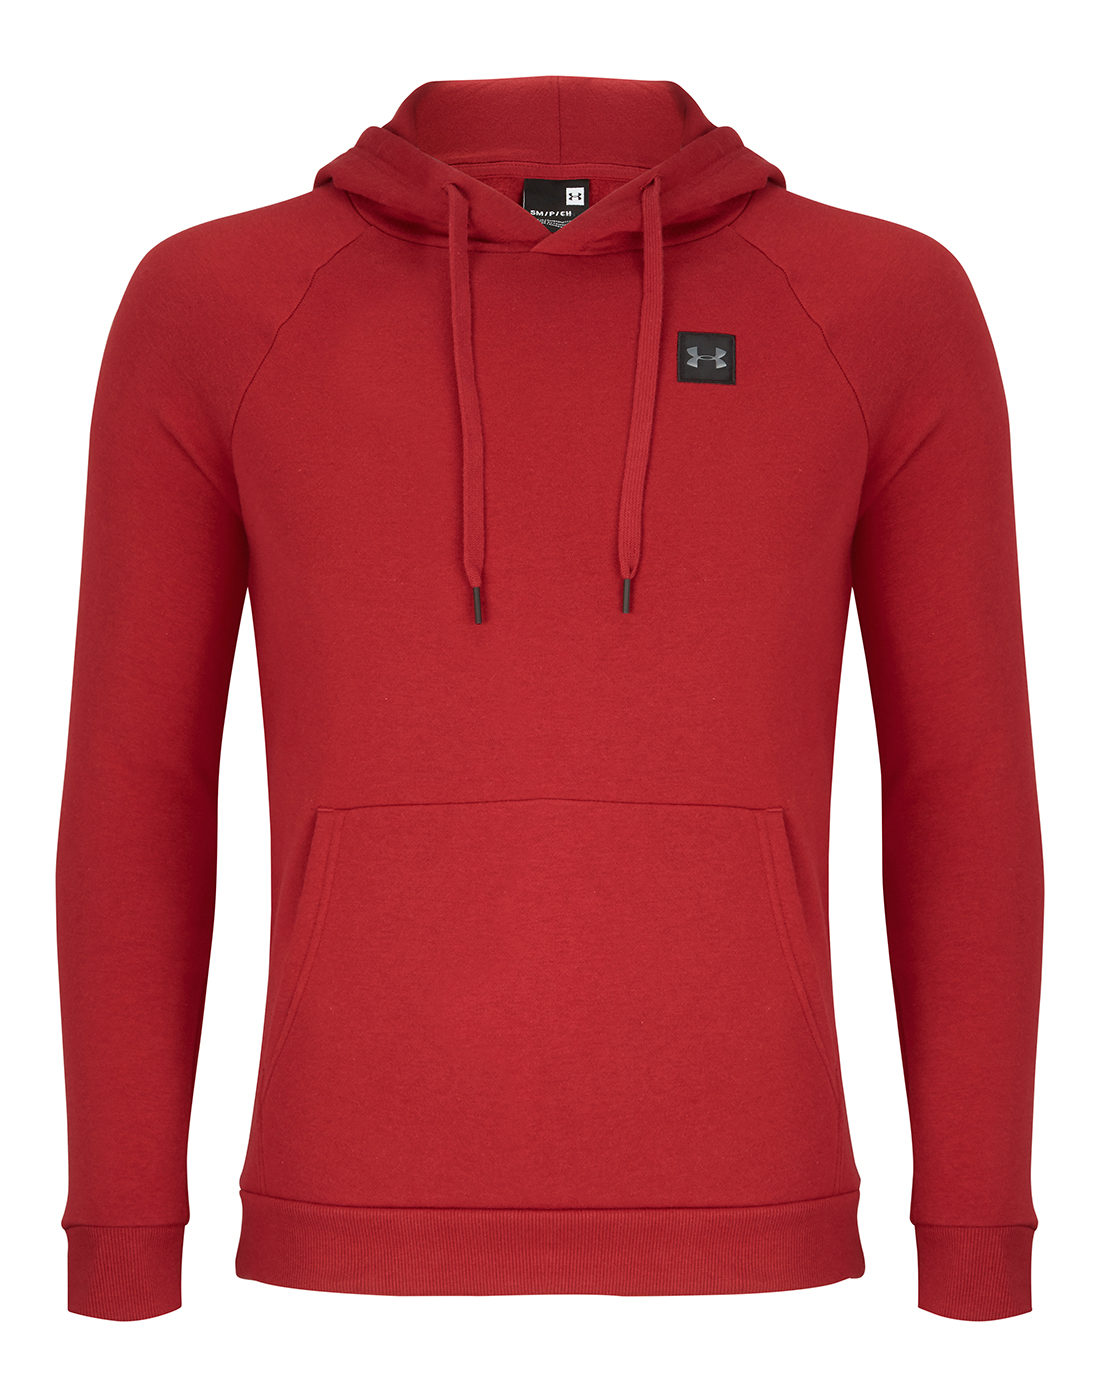 52bf5b652 Under Armour Mens Rival Fleece Hoodie | Life Style Sports